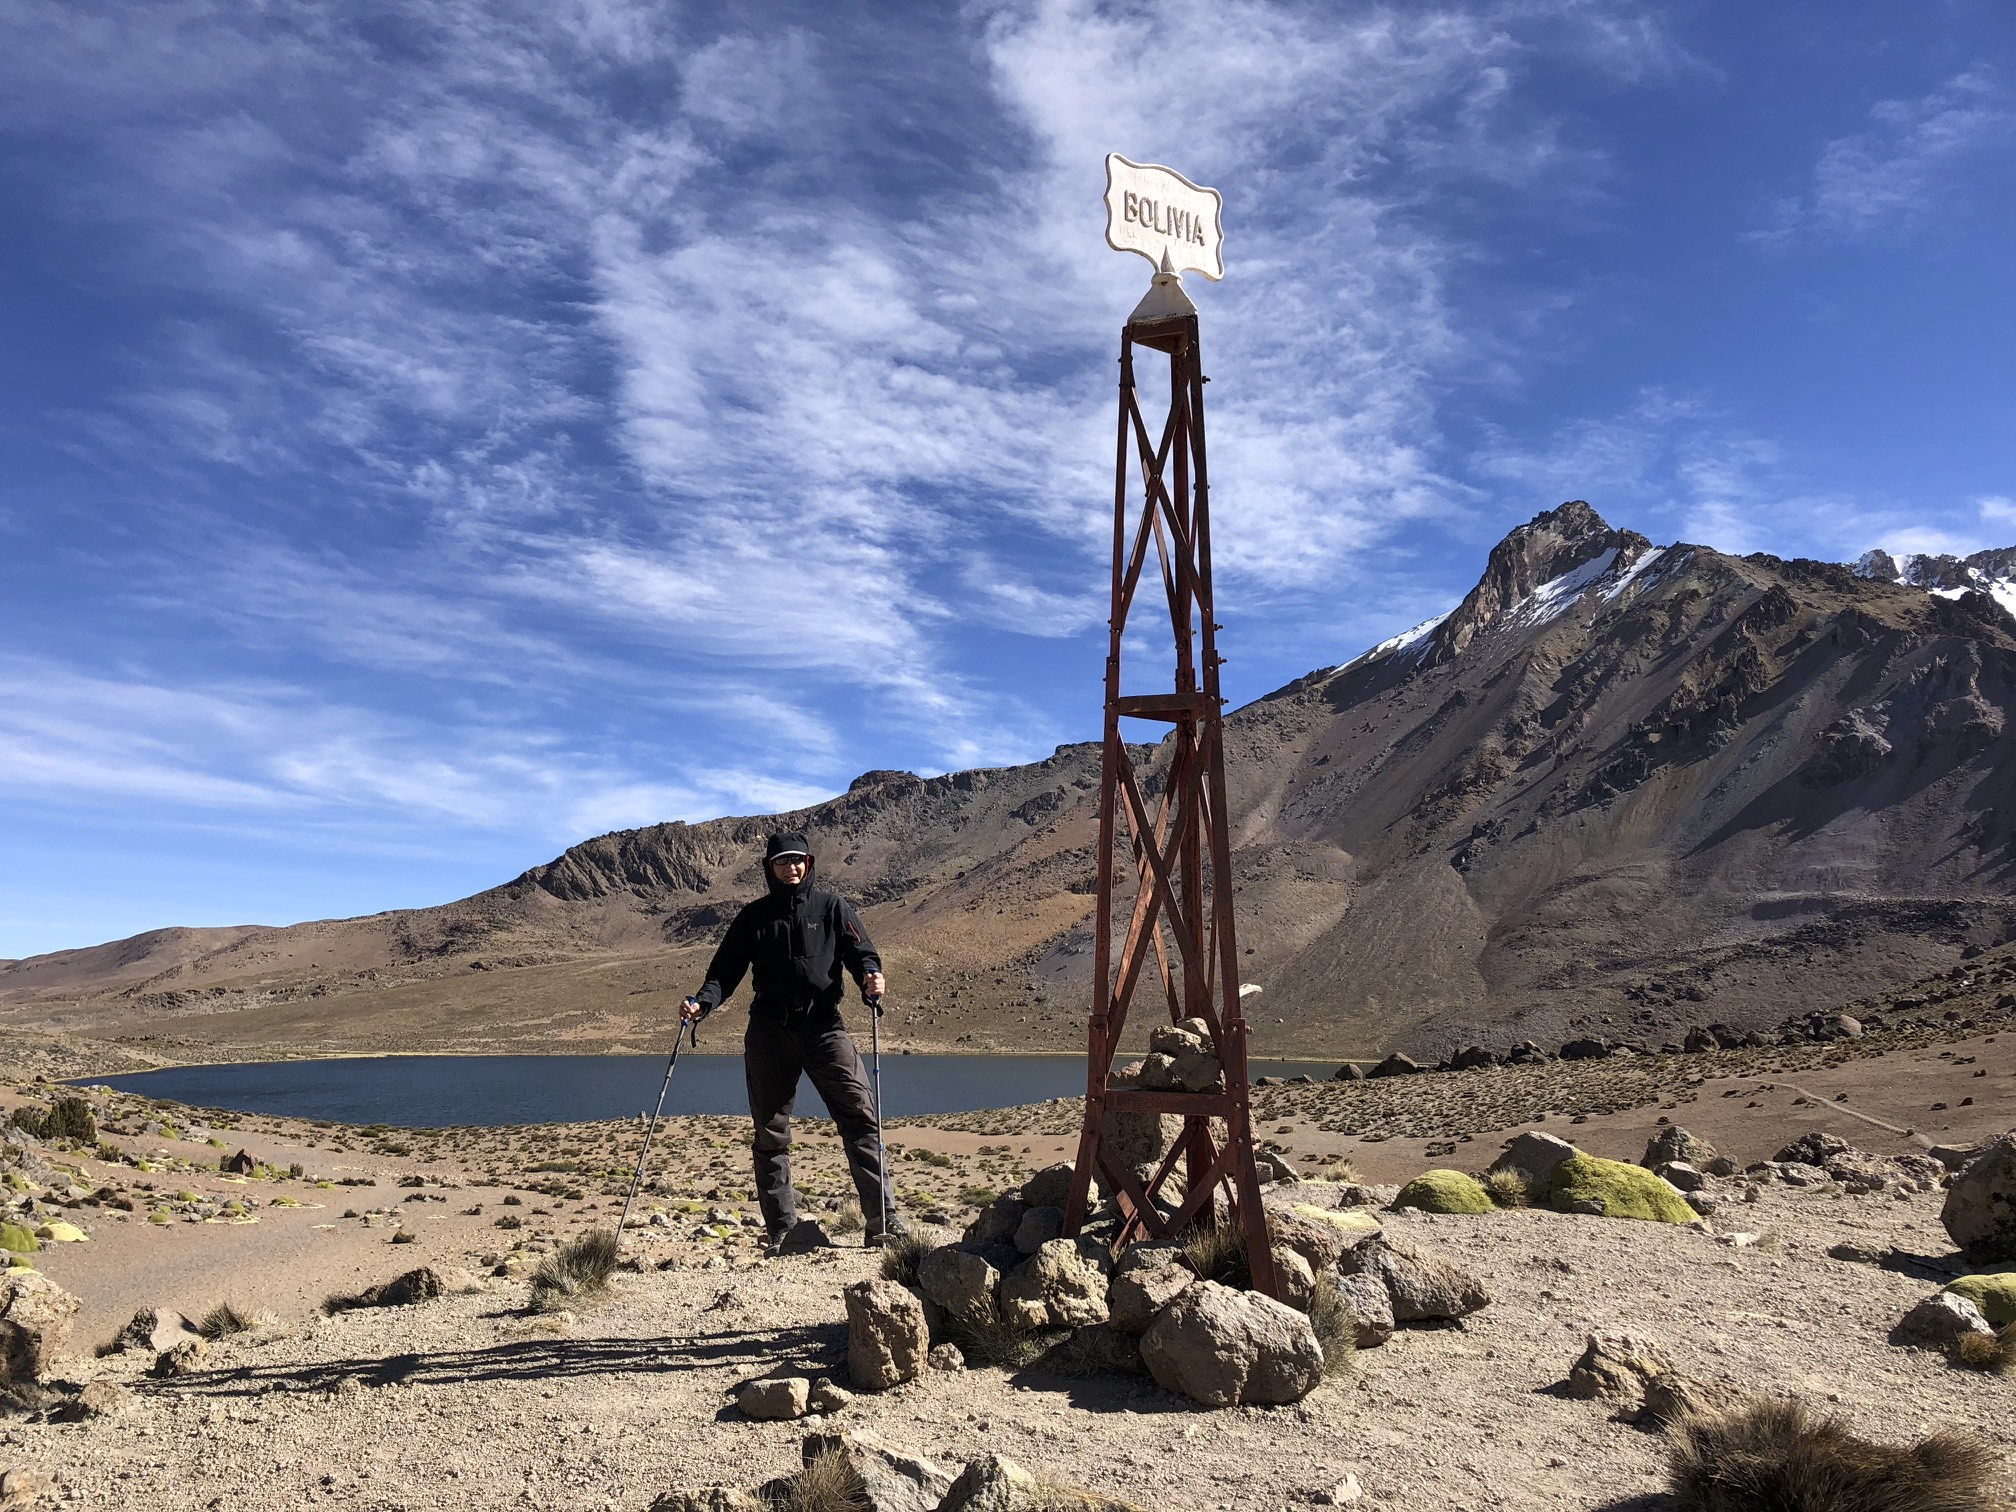 On the border of Chile and Bolivia - exploring the Sajama NP